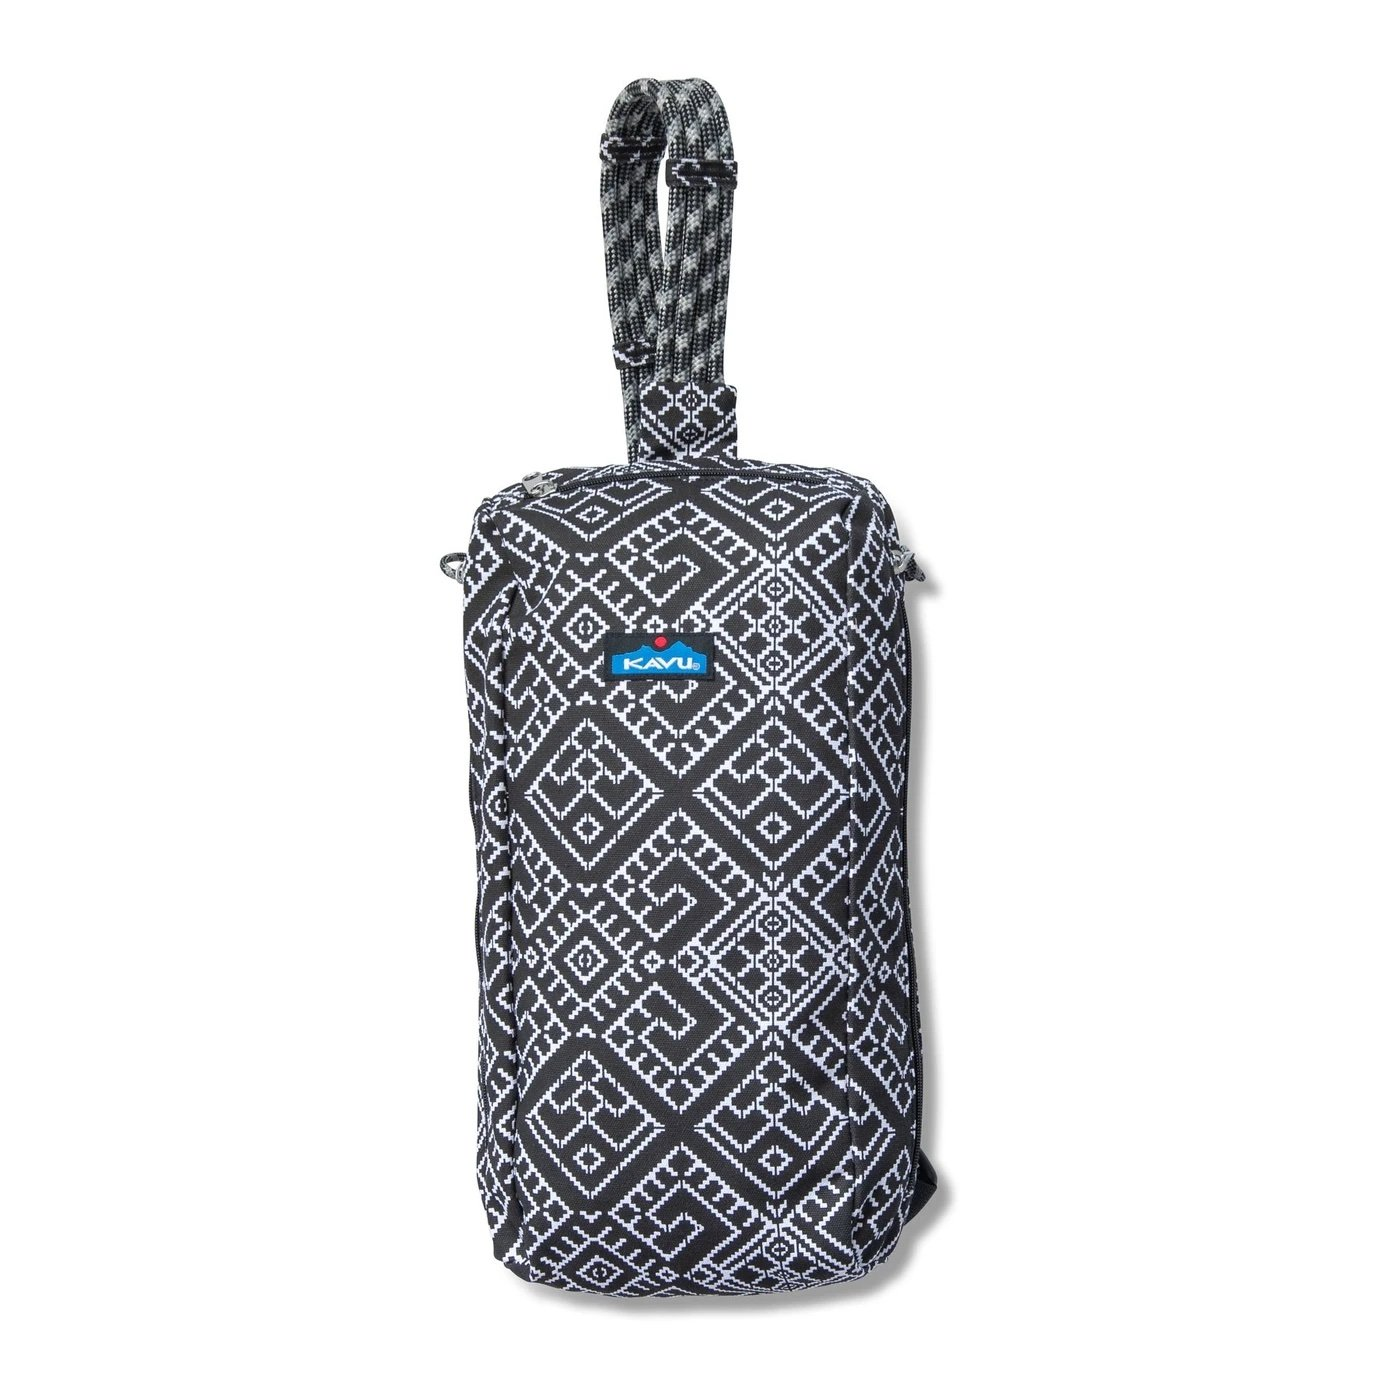 KAVU Back Packs TILE MAZE / os KAVU Switch Slinger Back Pack || David's Clothing 9299-1400